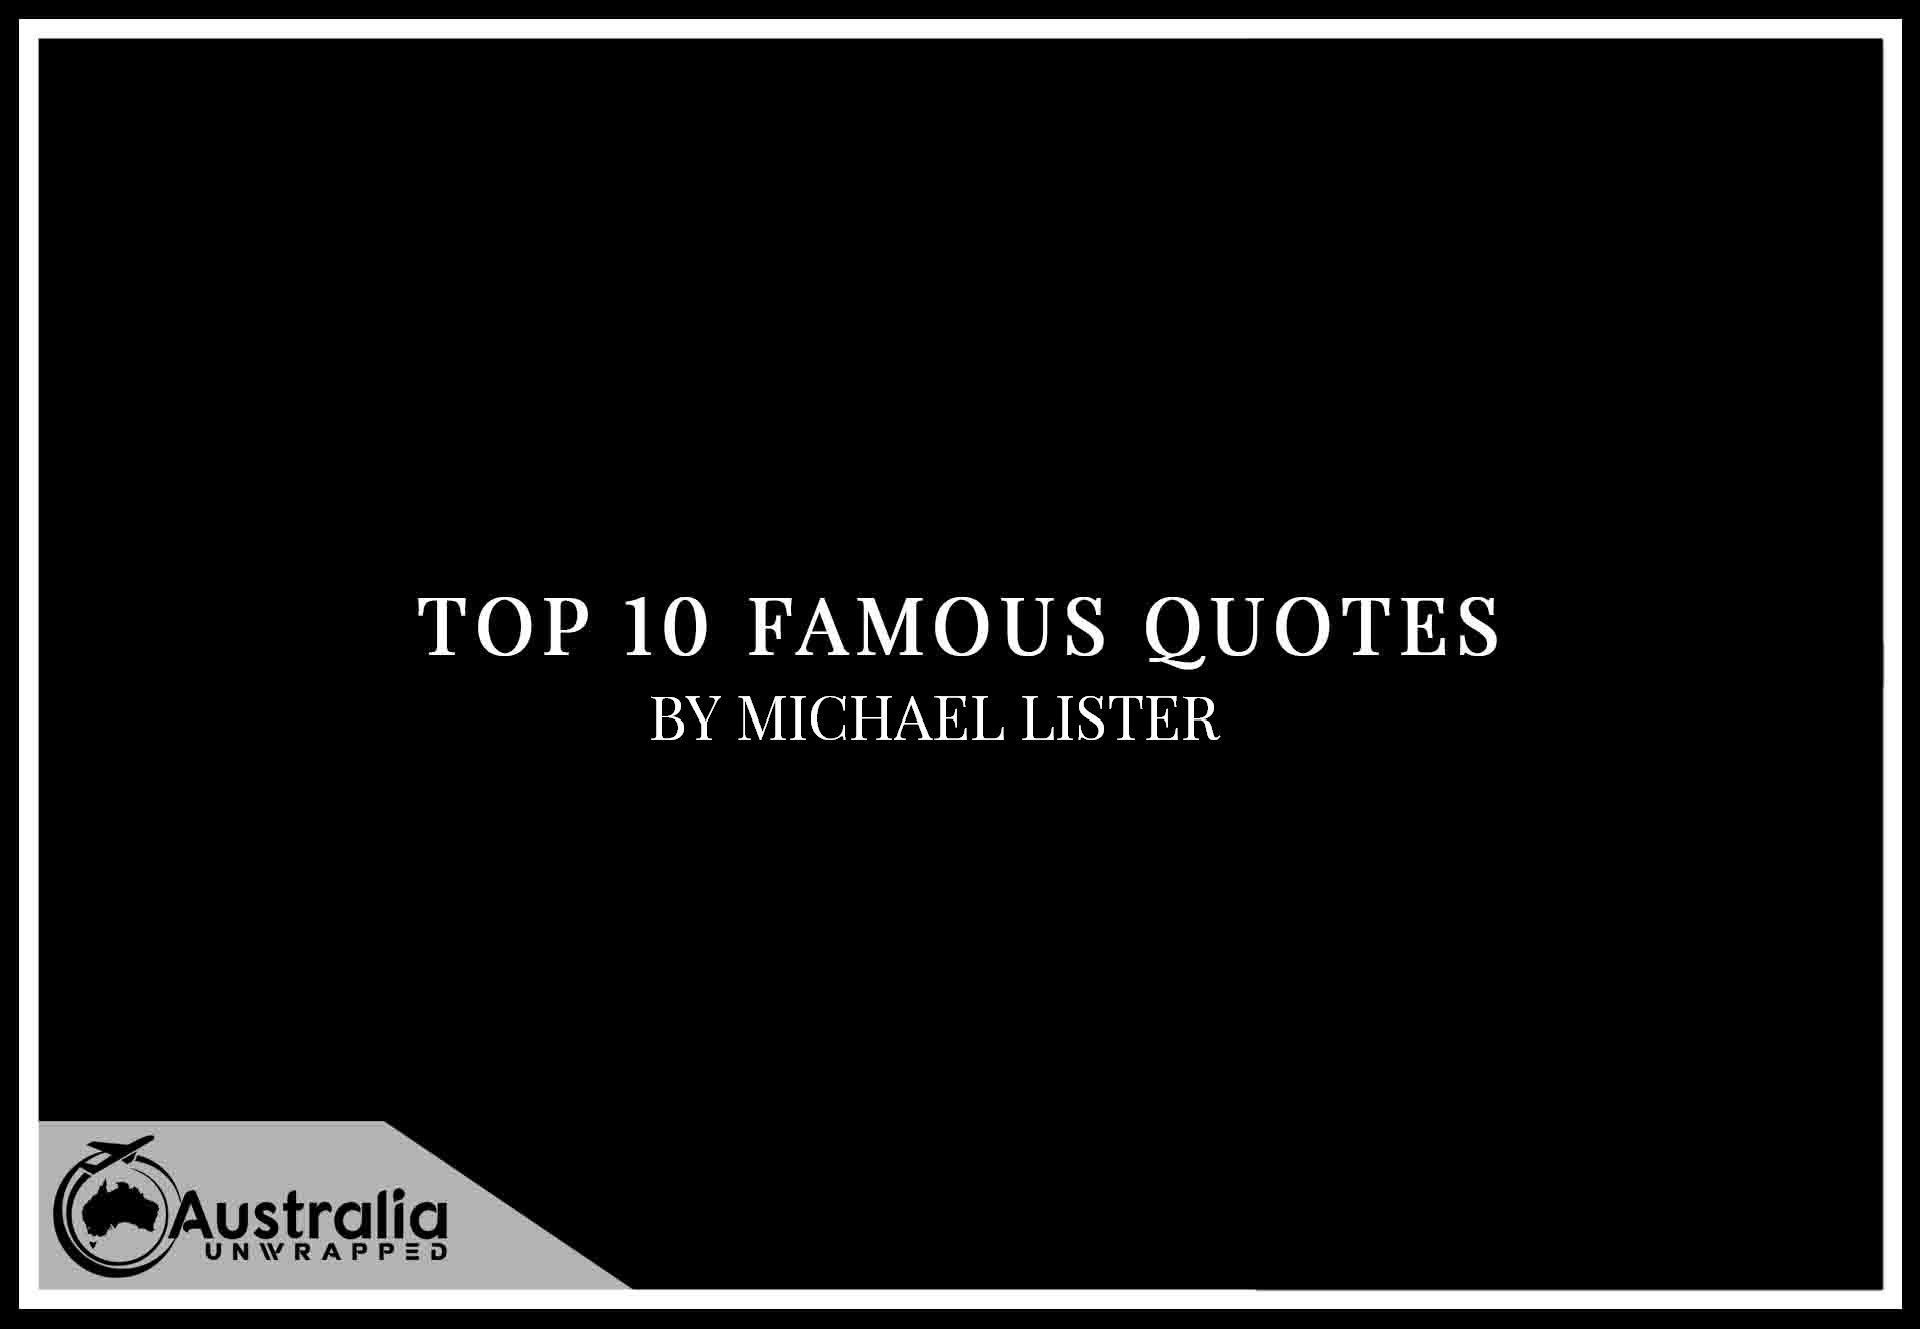 Top 10 Famous Quotes by Author Michael Lister